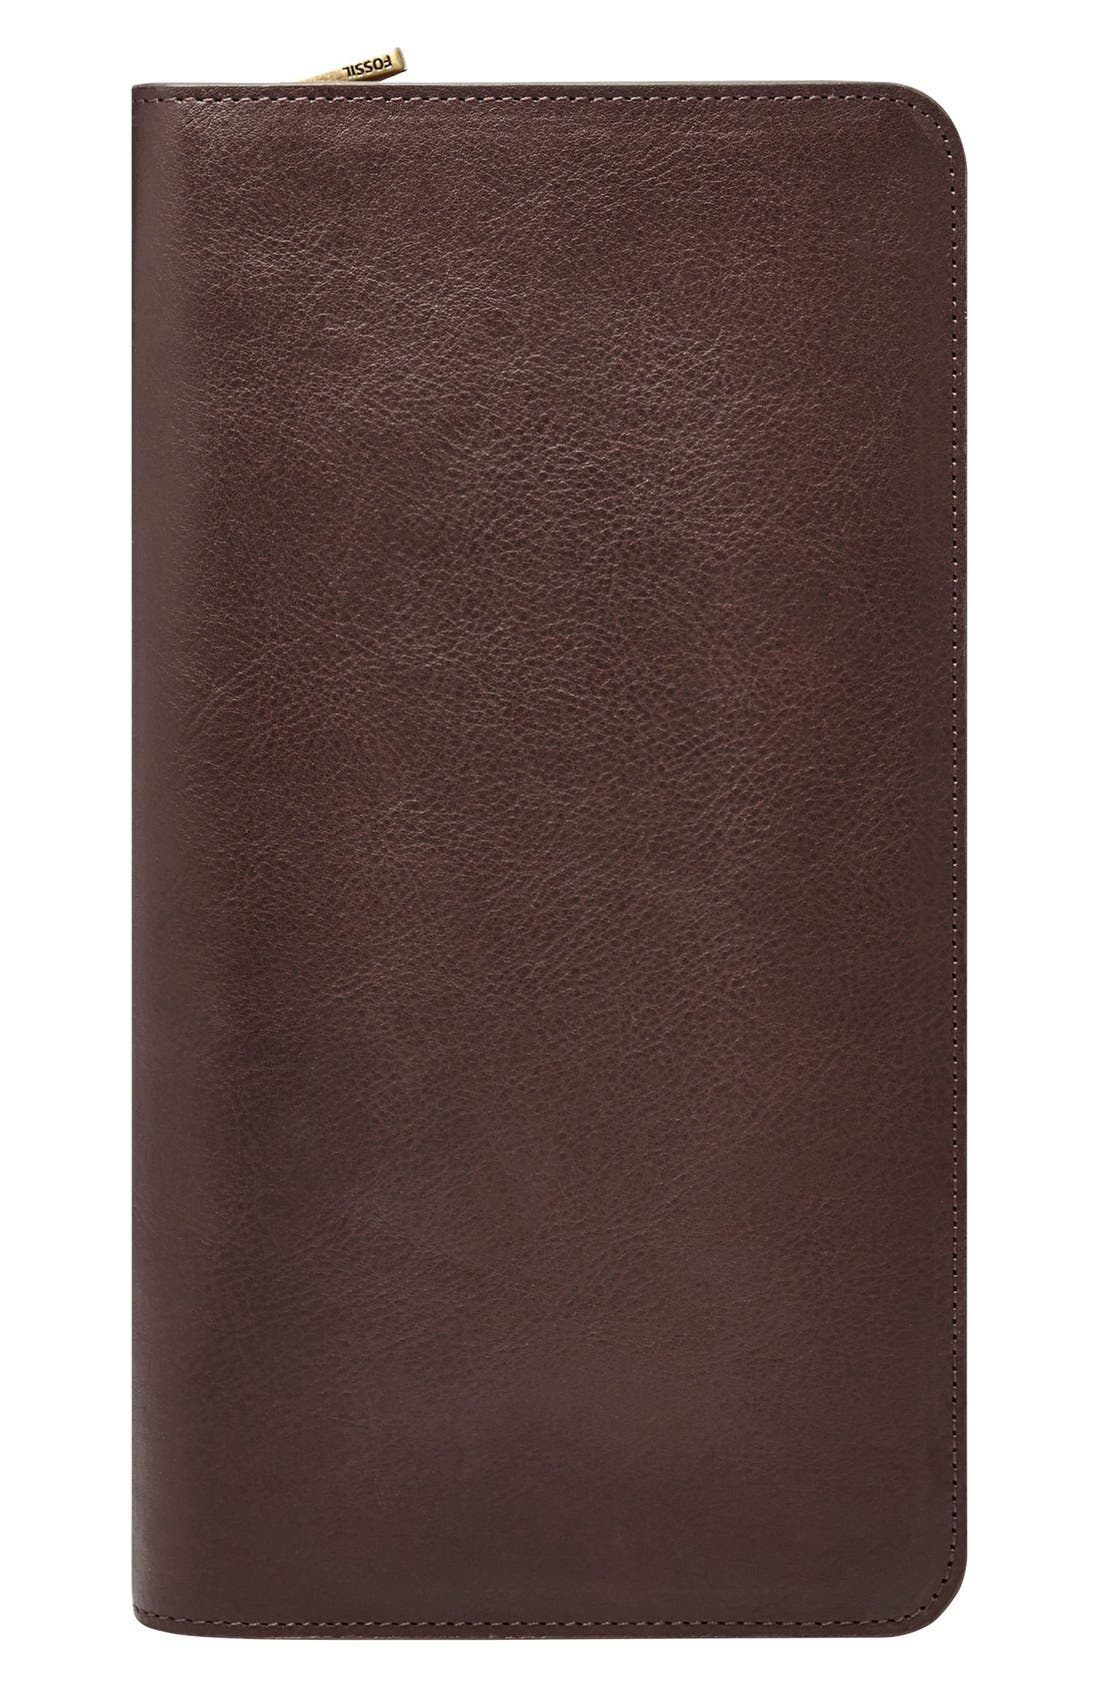 FOSSIL, Leather Zip Passport Case, Main thumbnail 1, color, 201